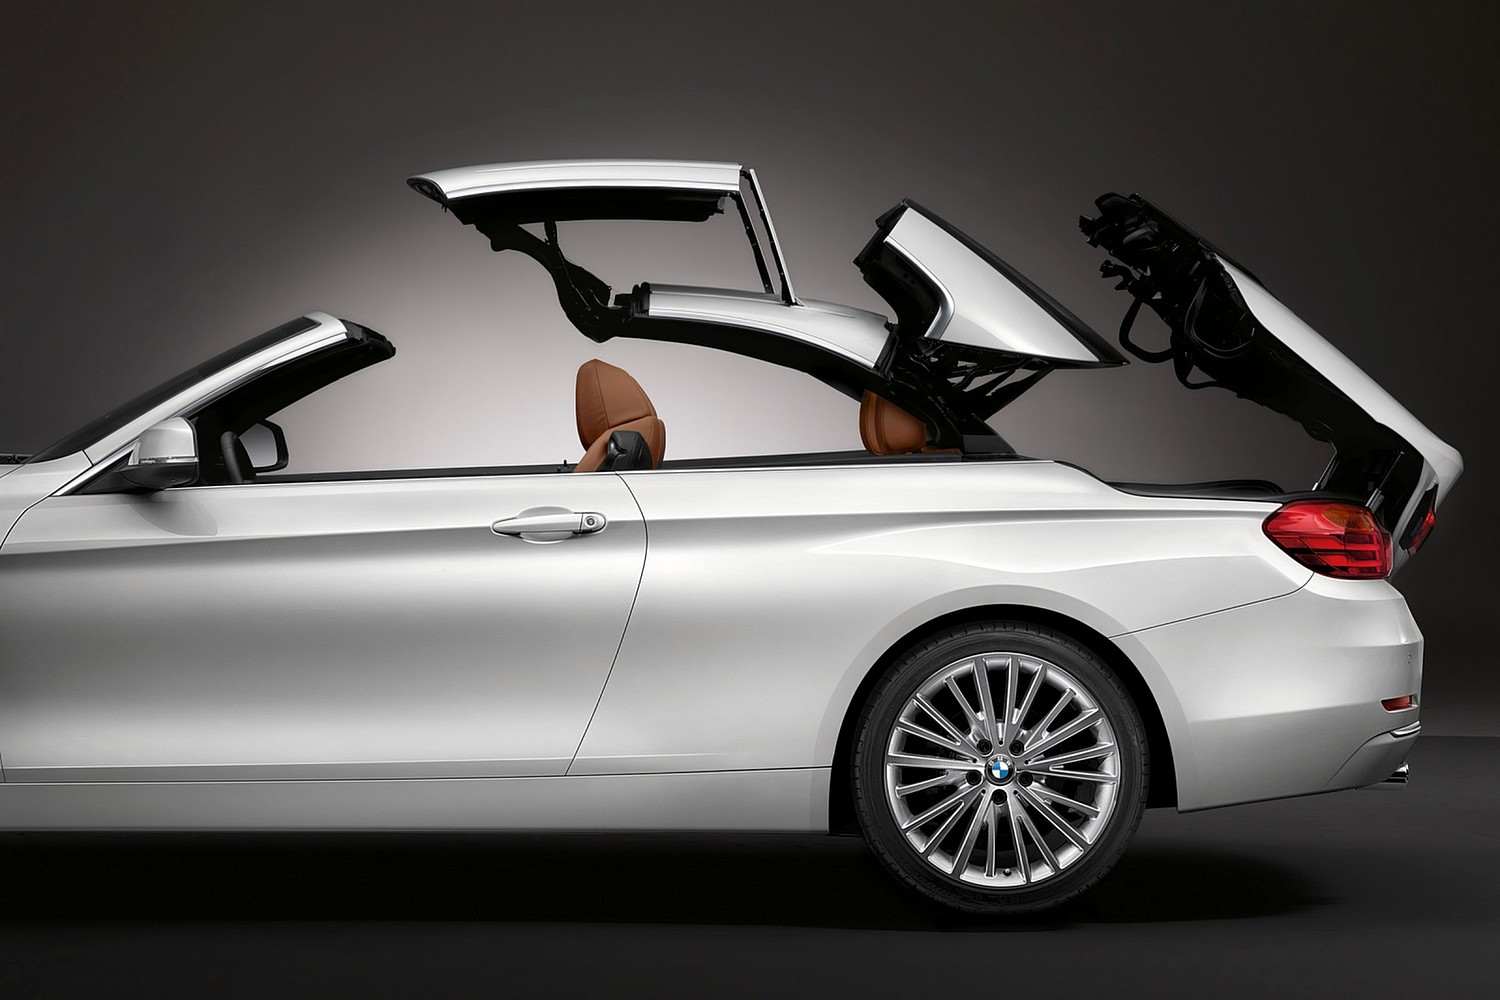 2017 BMW 4 Series 430i SULEV Convertible Exterior Detail. Luxury Line Package Shown.